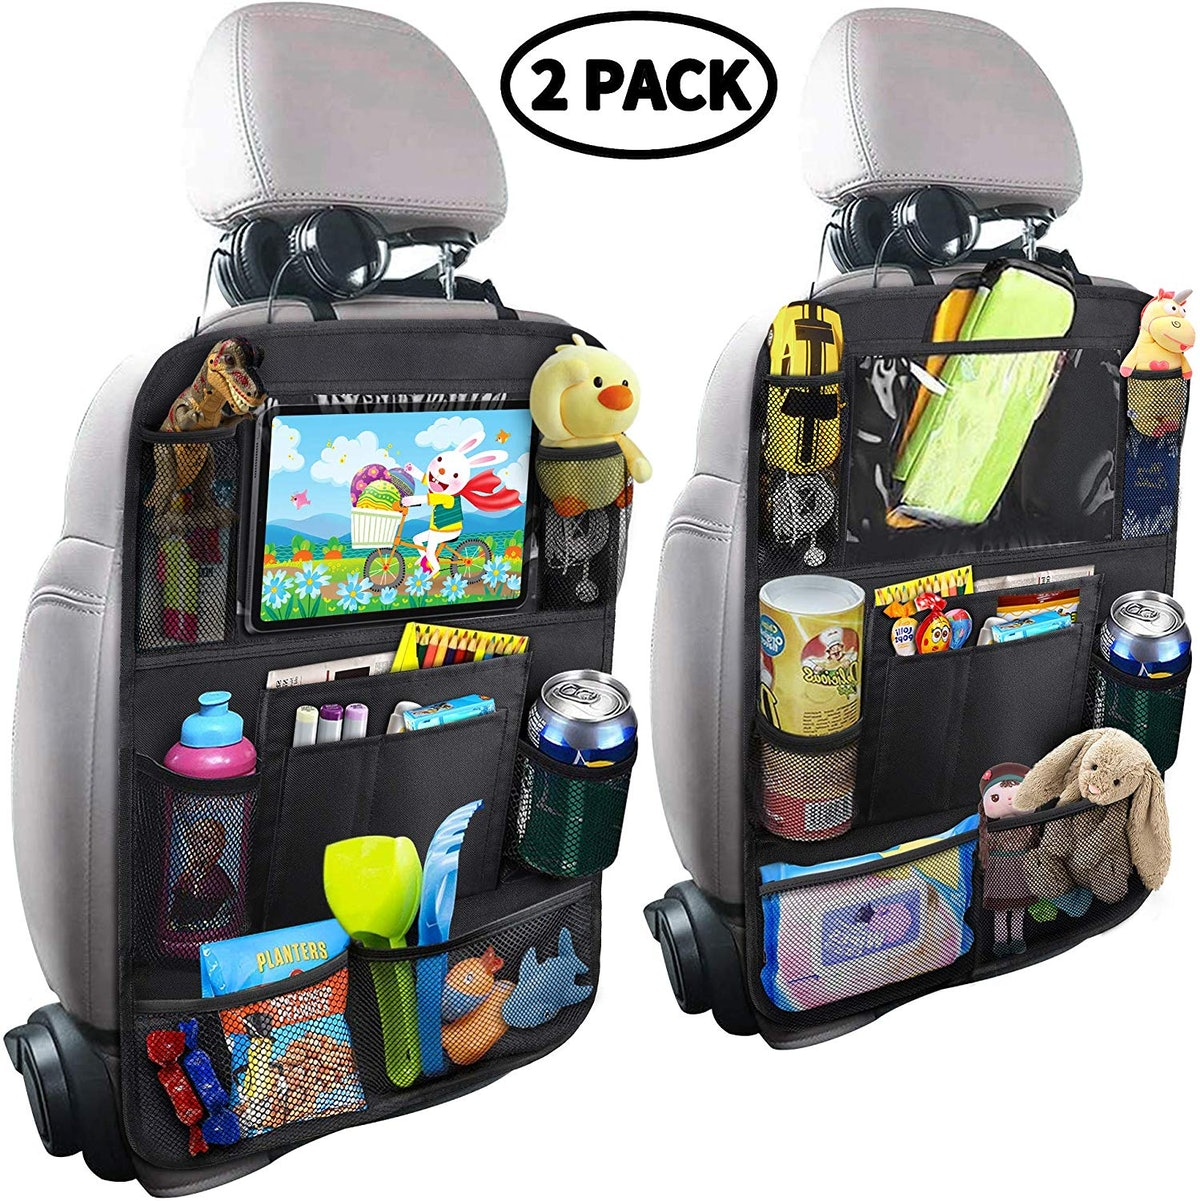 MZTDYTL Car Backseat Organizer with Touch Screen Tablet Holder + 9 Storage Pockets (2-Pack)